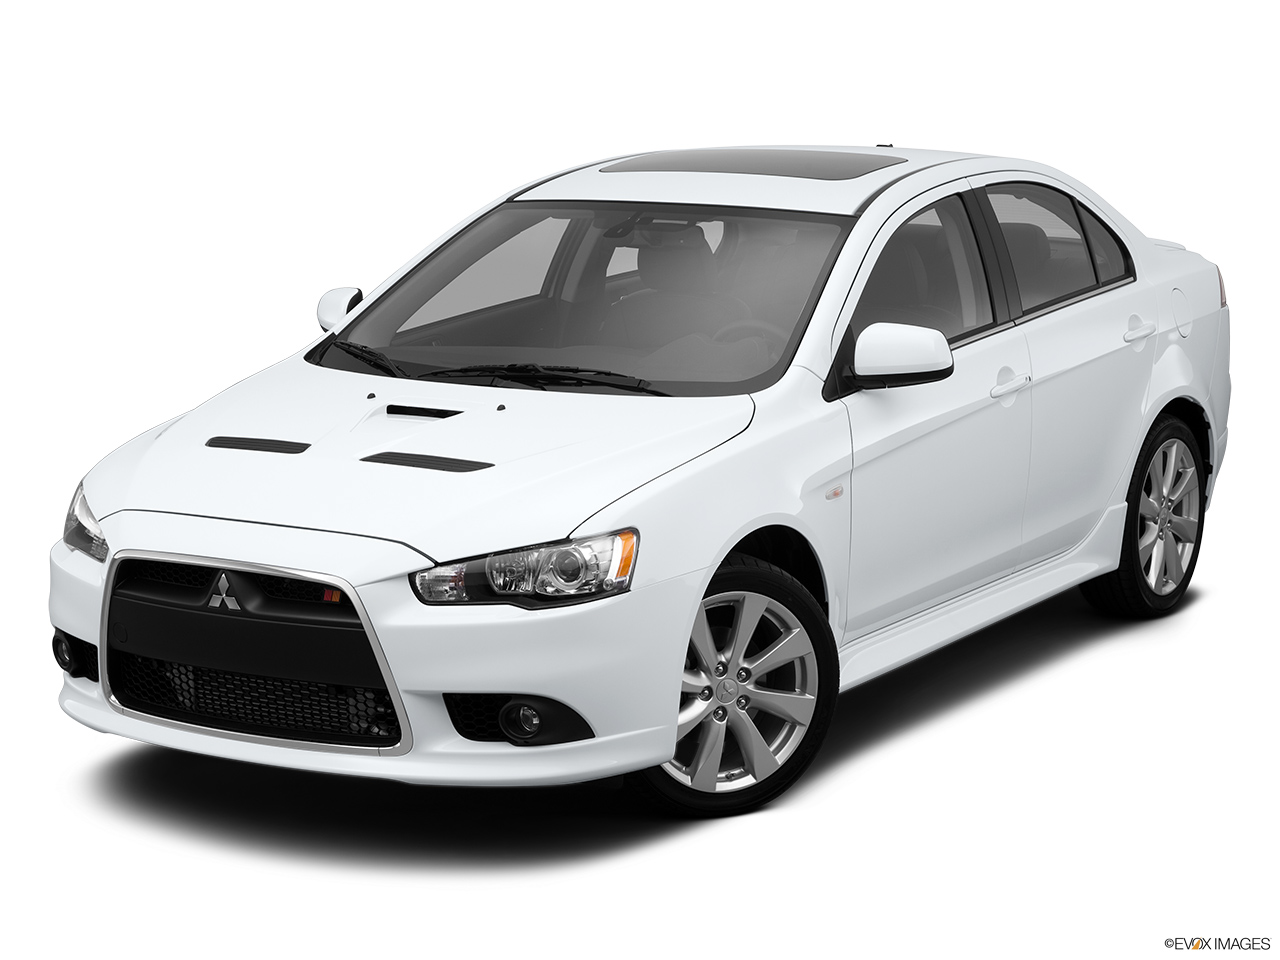 2014 mitsubishi lancer sedan manual gt fwd. Black Bedroom Furniture Sets. Home Design Ideas